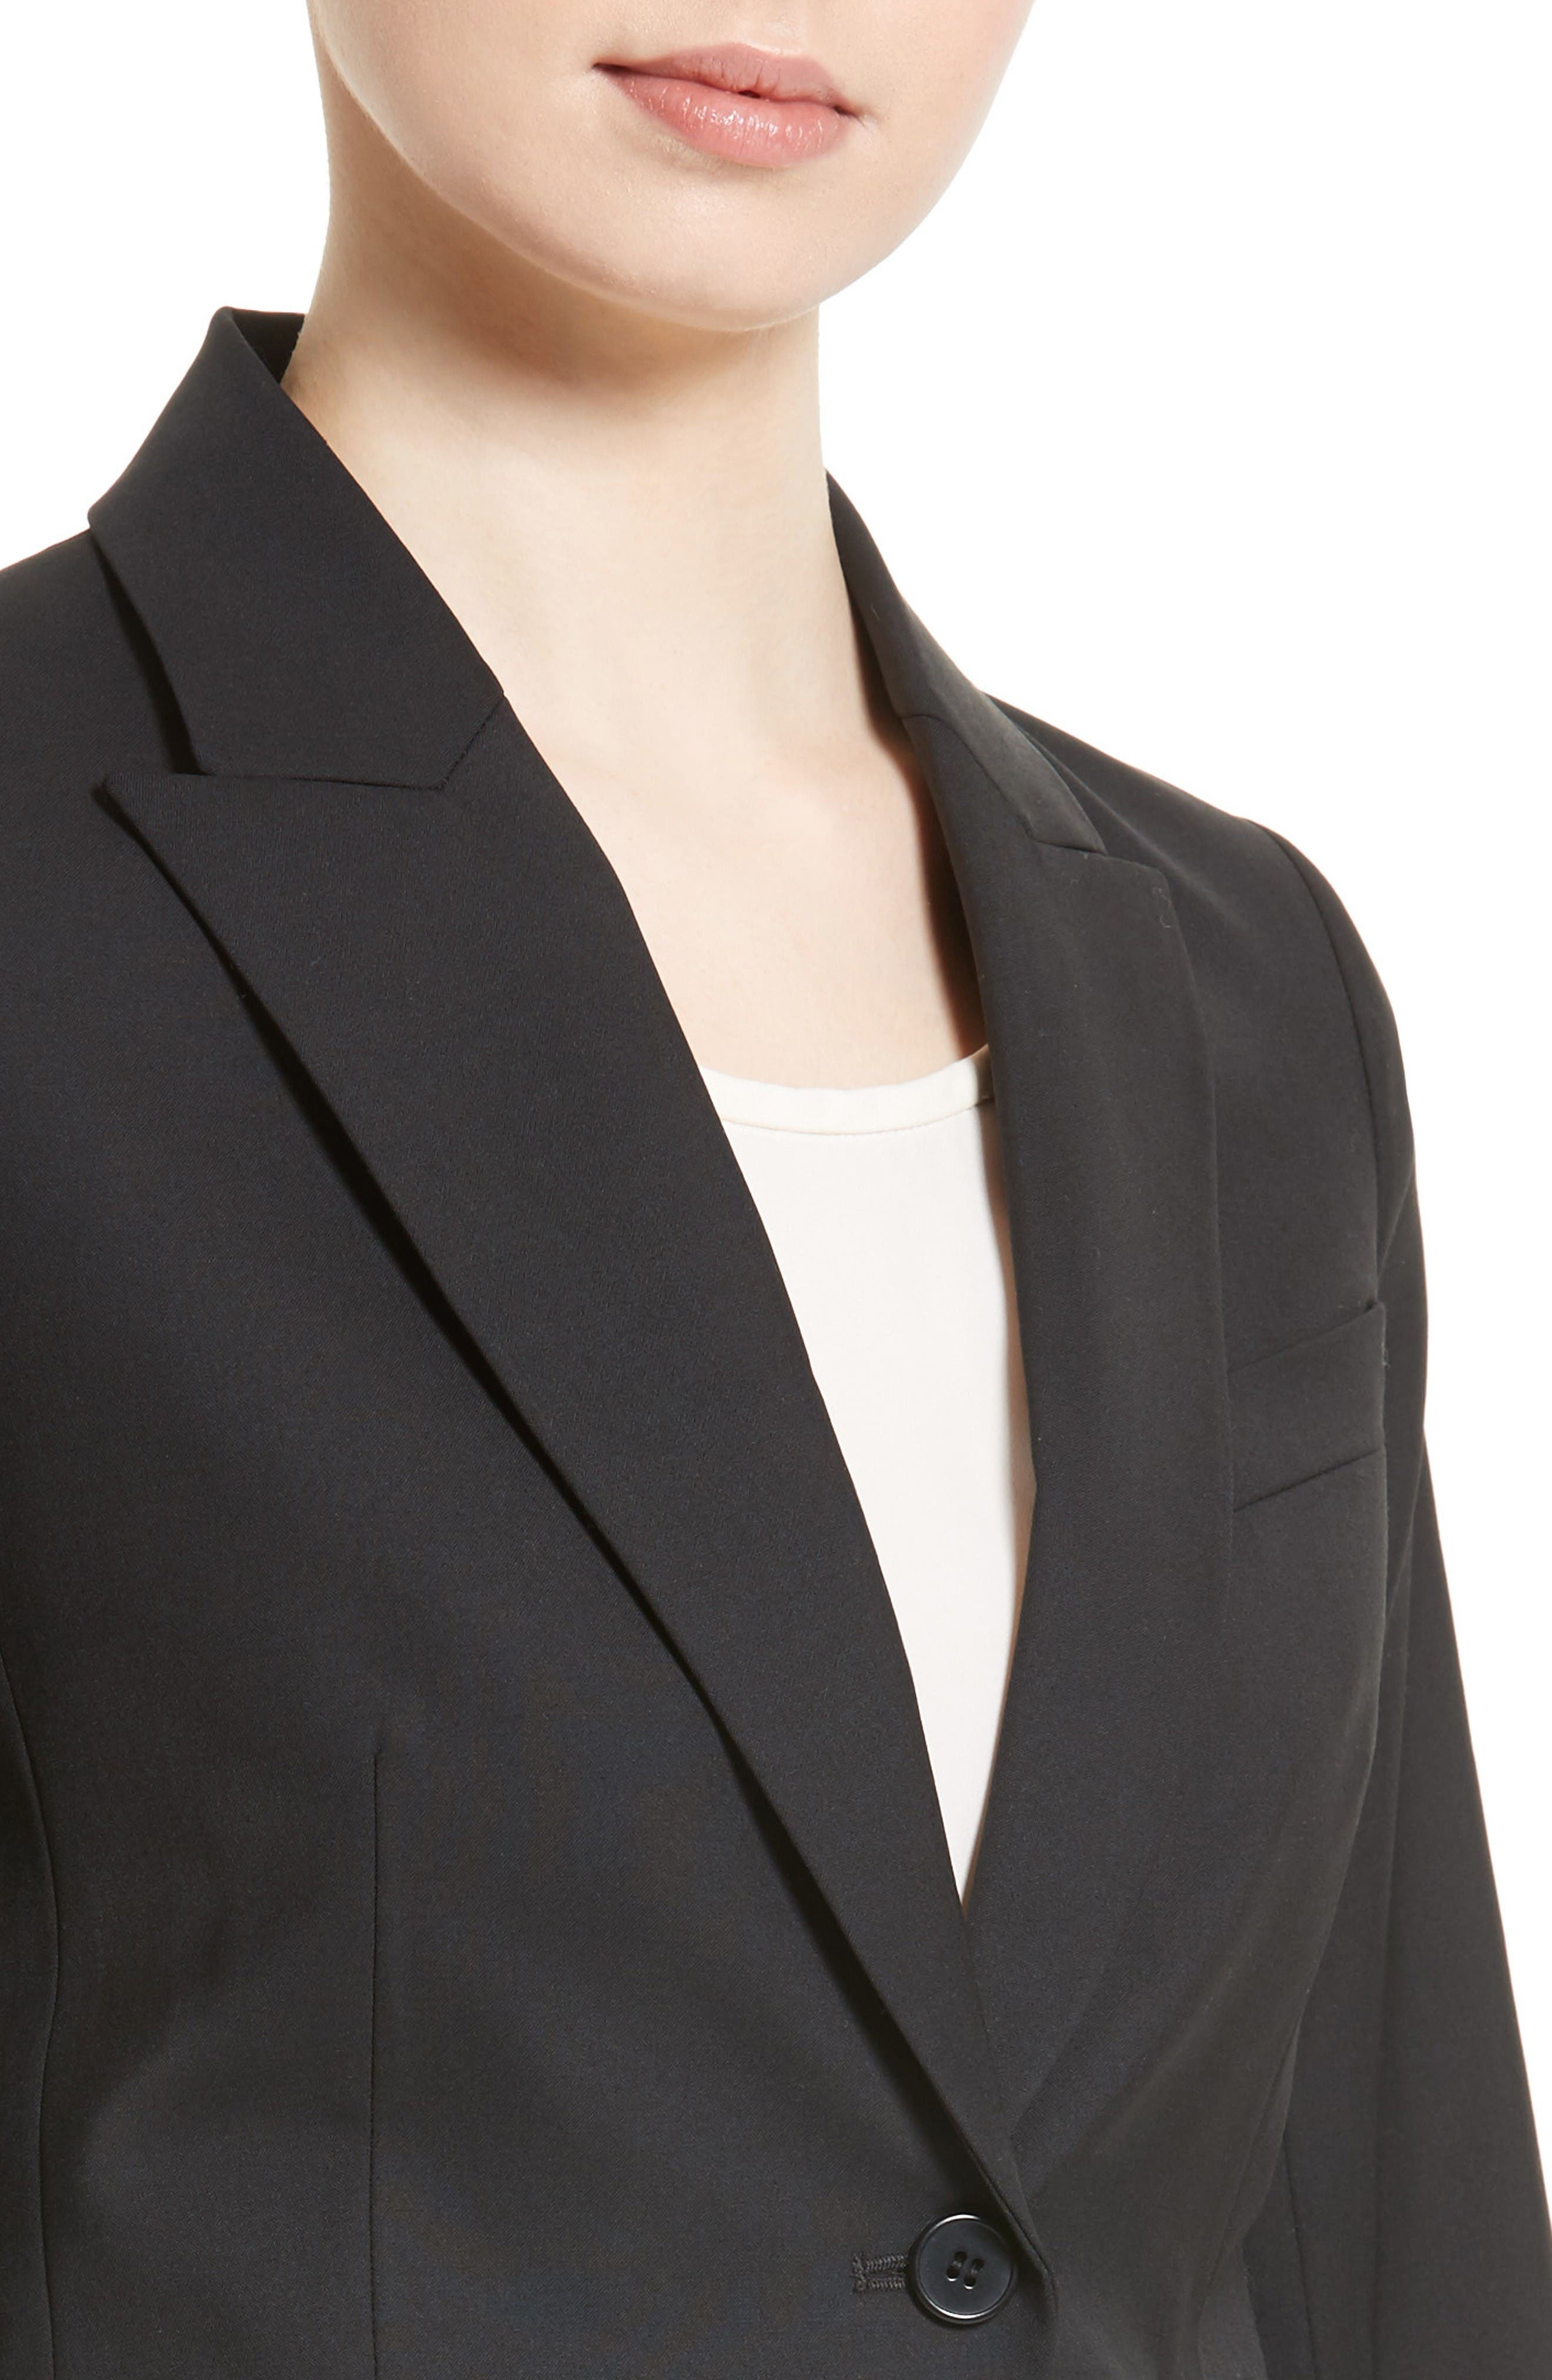 Alternate Image 4  - Theory Brince B Good Wool Suit Jacket (Nordstrom Exclusive)